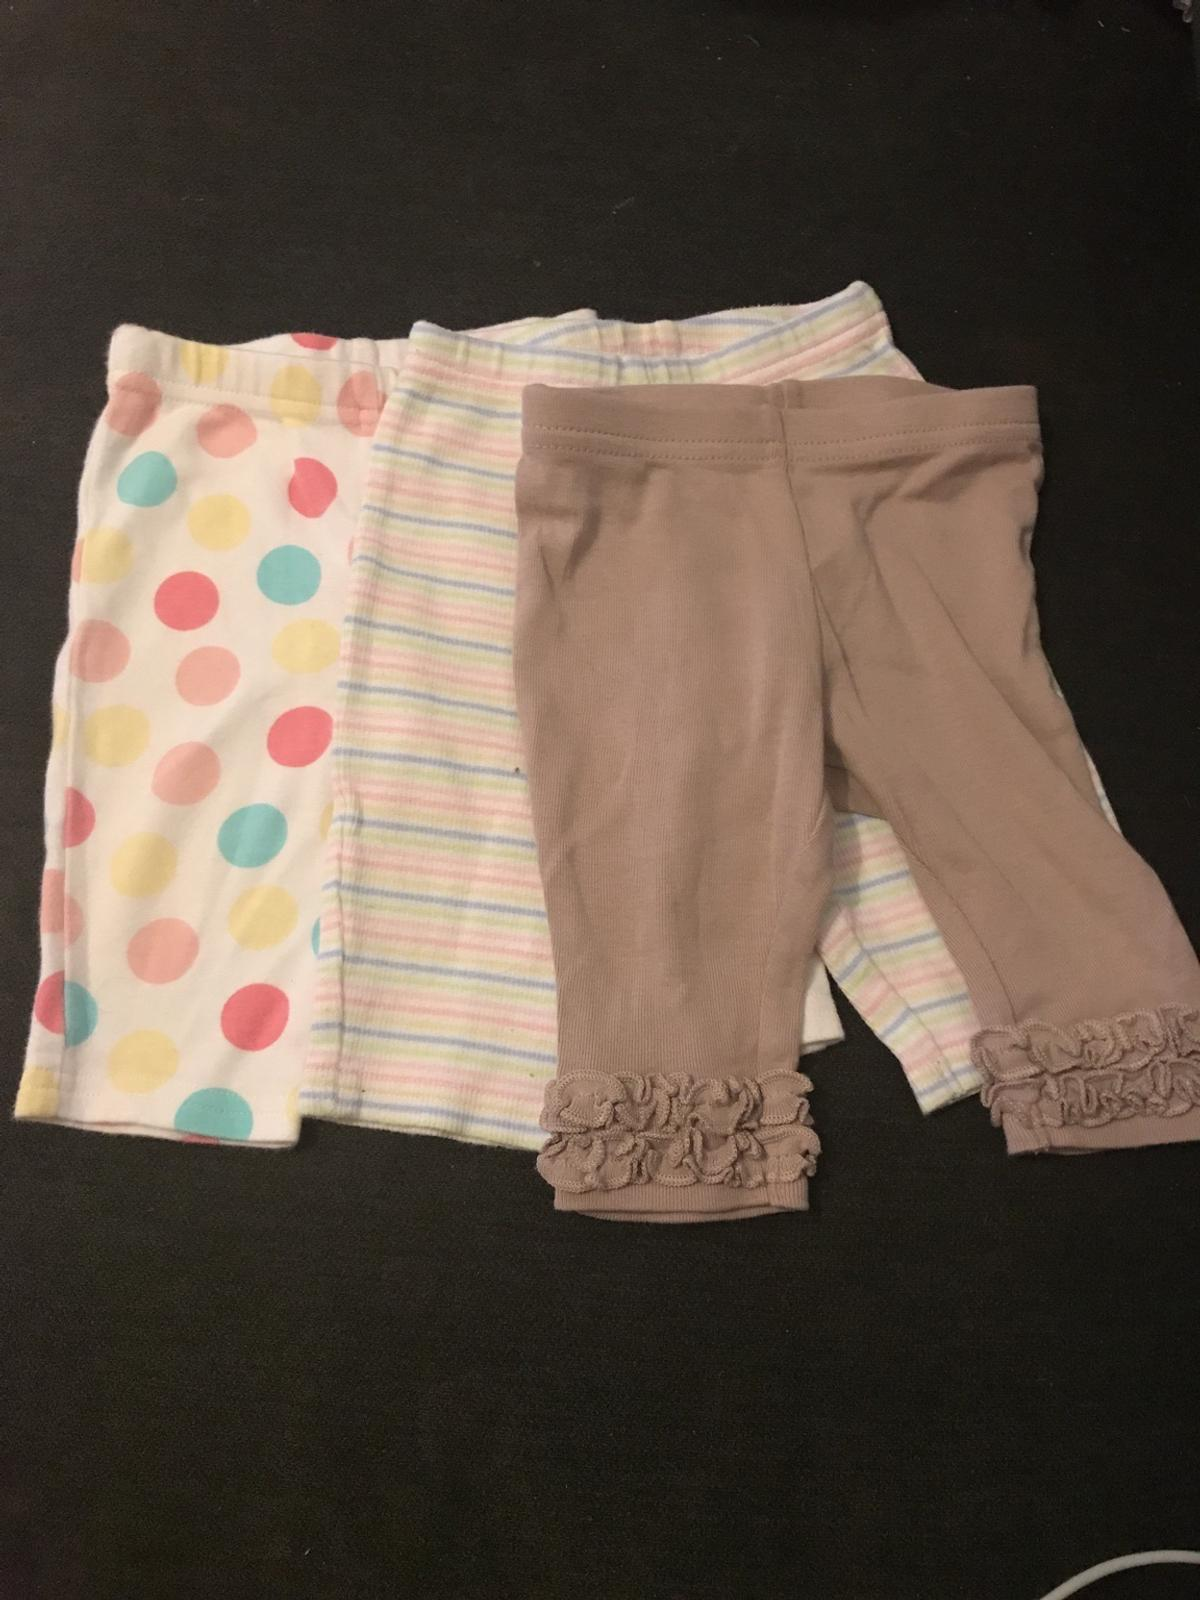 3 lovely pairs of leggings from Next baby, up to 3 months, 100% cotton.  Postage cost based on Royal Mail signed for second class delivery service.